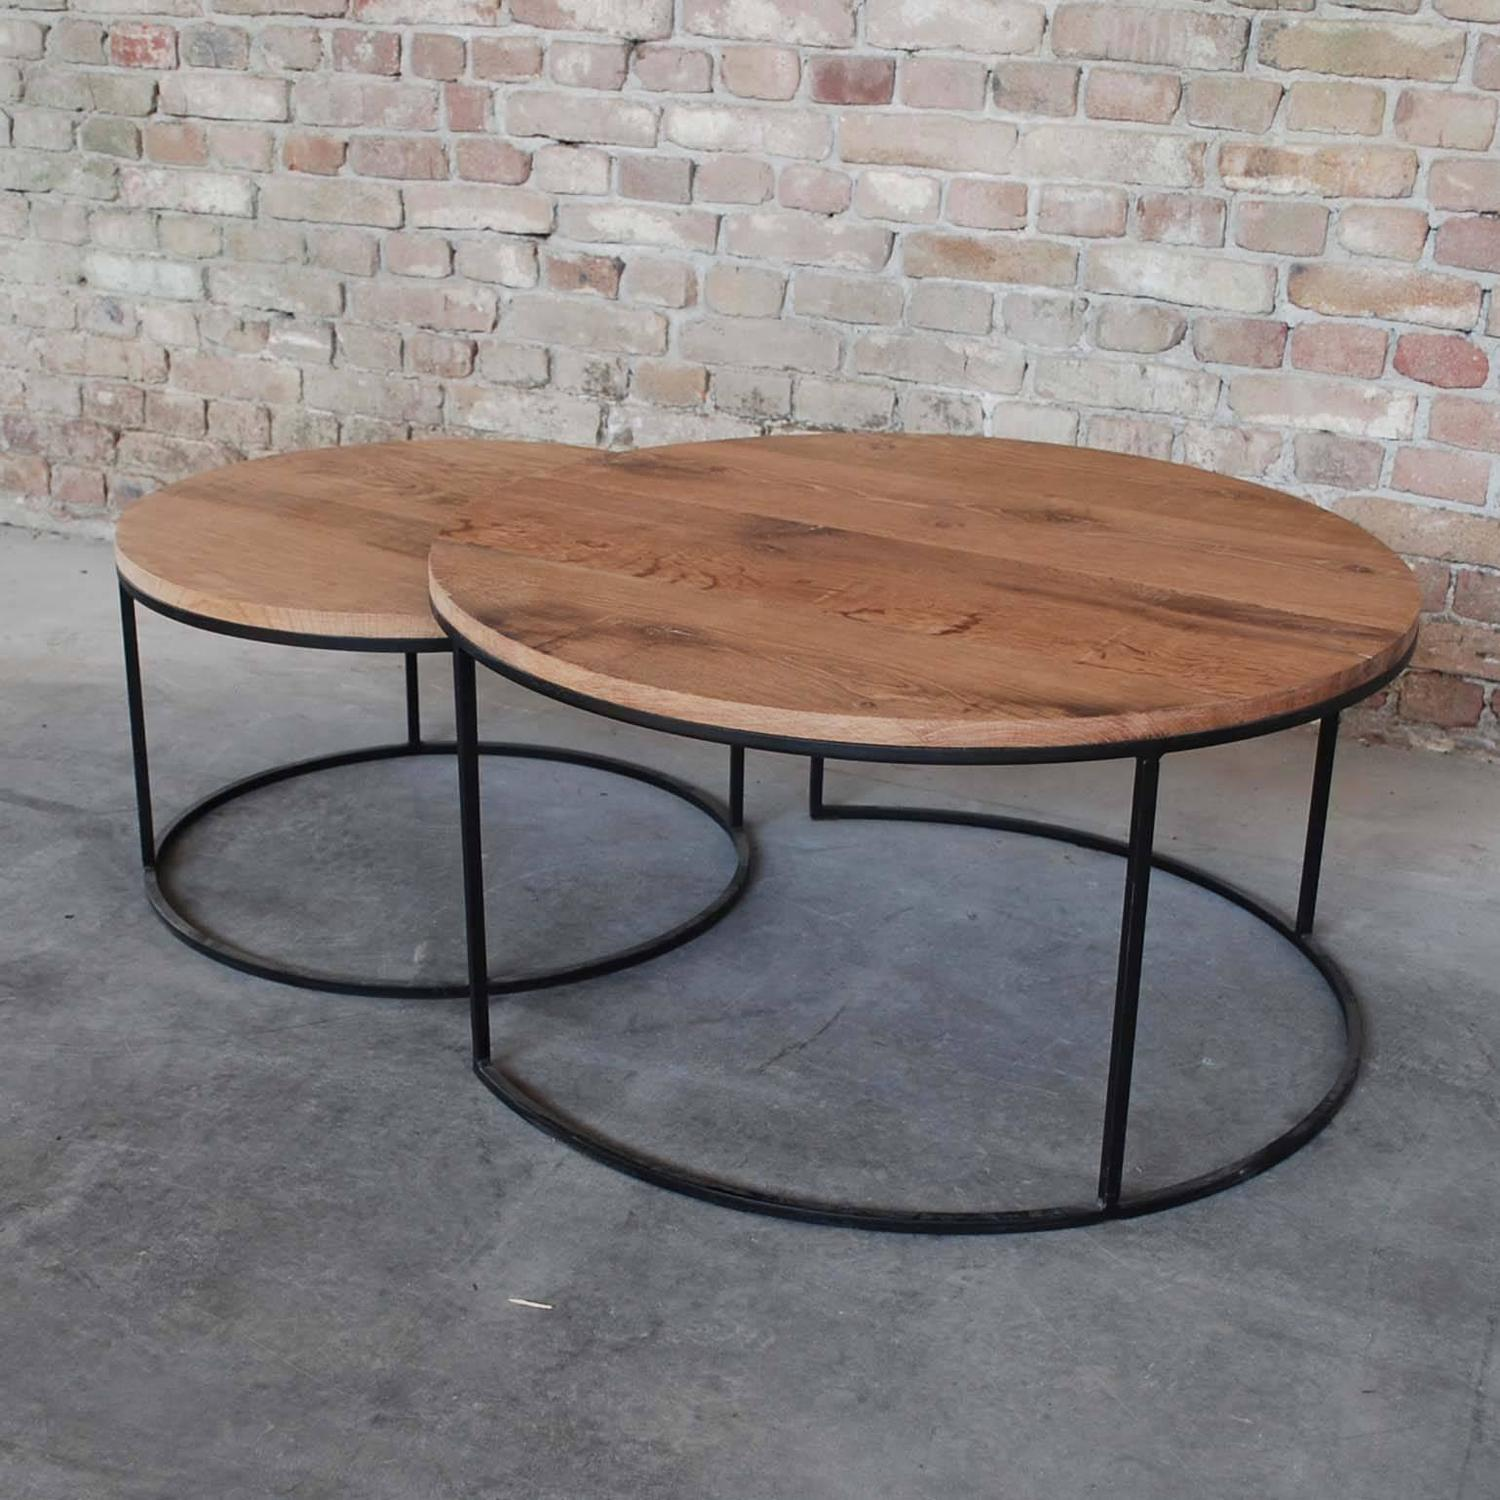 Round 3 Round Coffee Table Made Of Metal Cm ø80x23h: Contemporary Pair Of Coffee Tables Round For Sale At 1stdibs